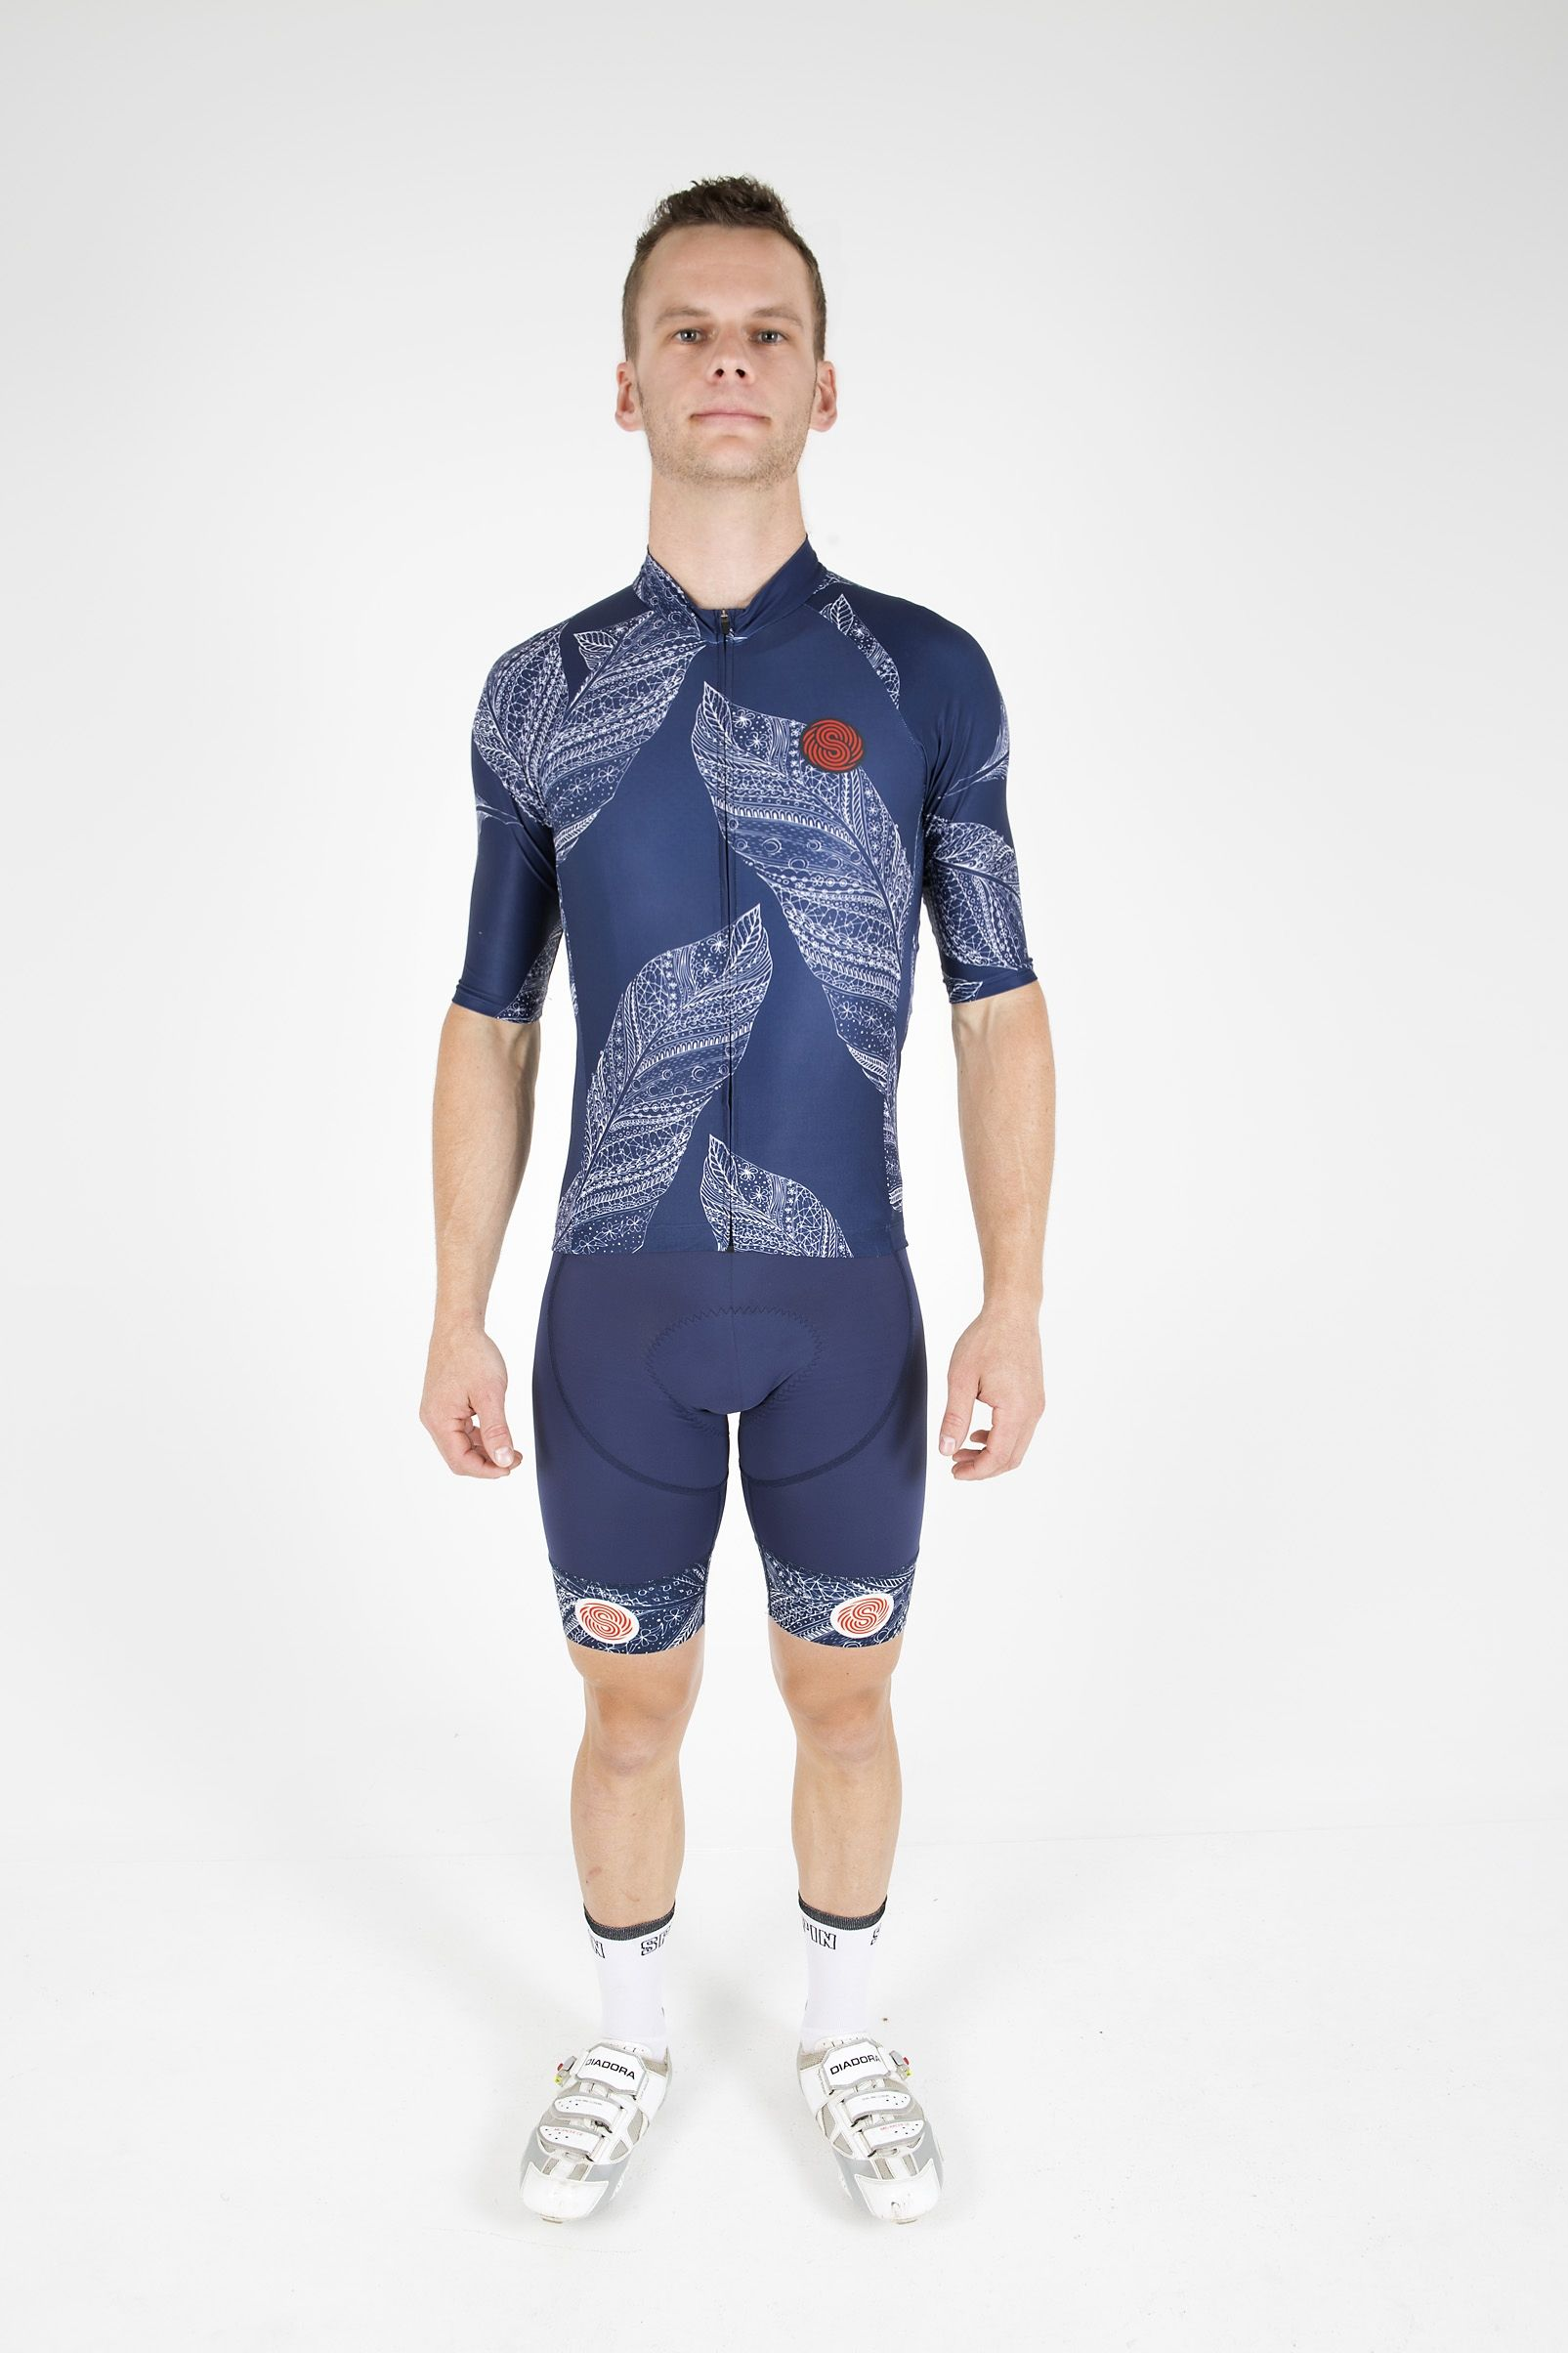 Spin Cycle Clothing is you pick when it come to unique custom cycling  clothing. Training to professional race cycling clothing we have you covered c6a4e4310